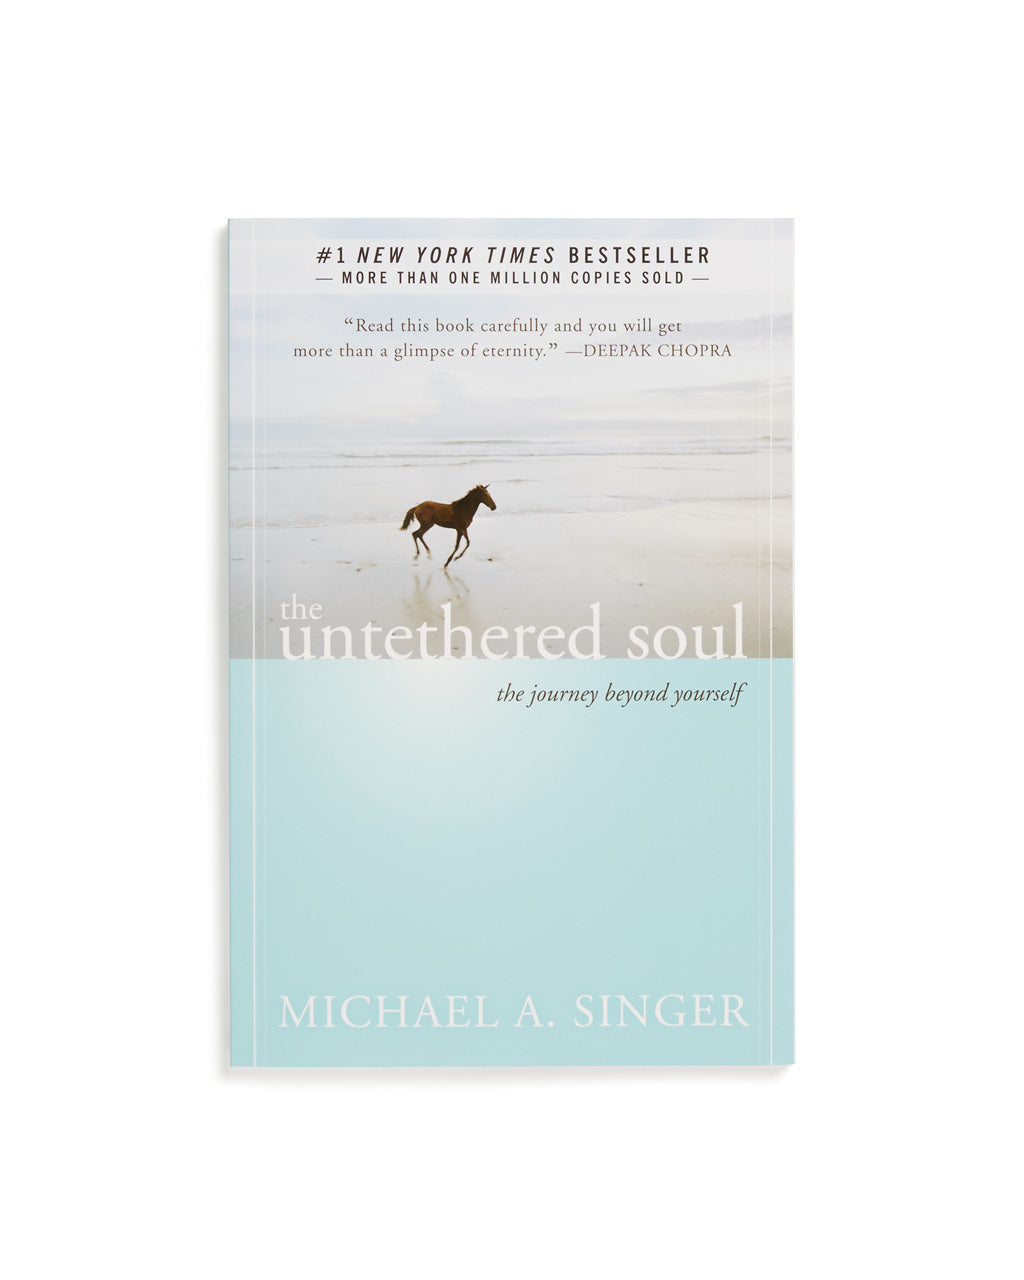 'The Untethered Soul' by Michael A. Singer in paperback.